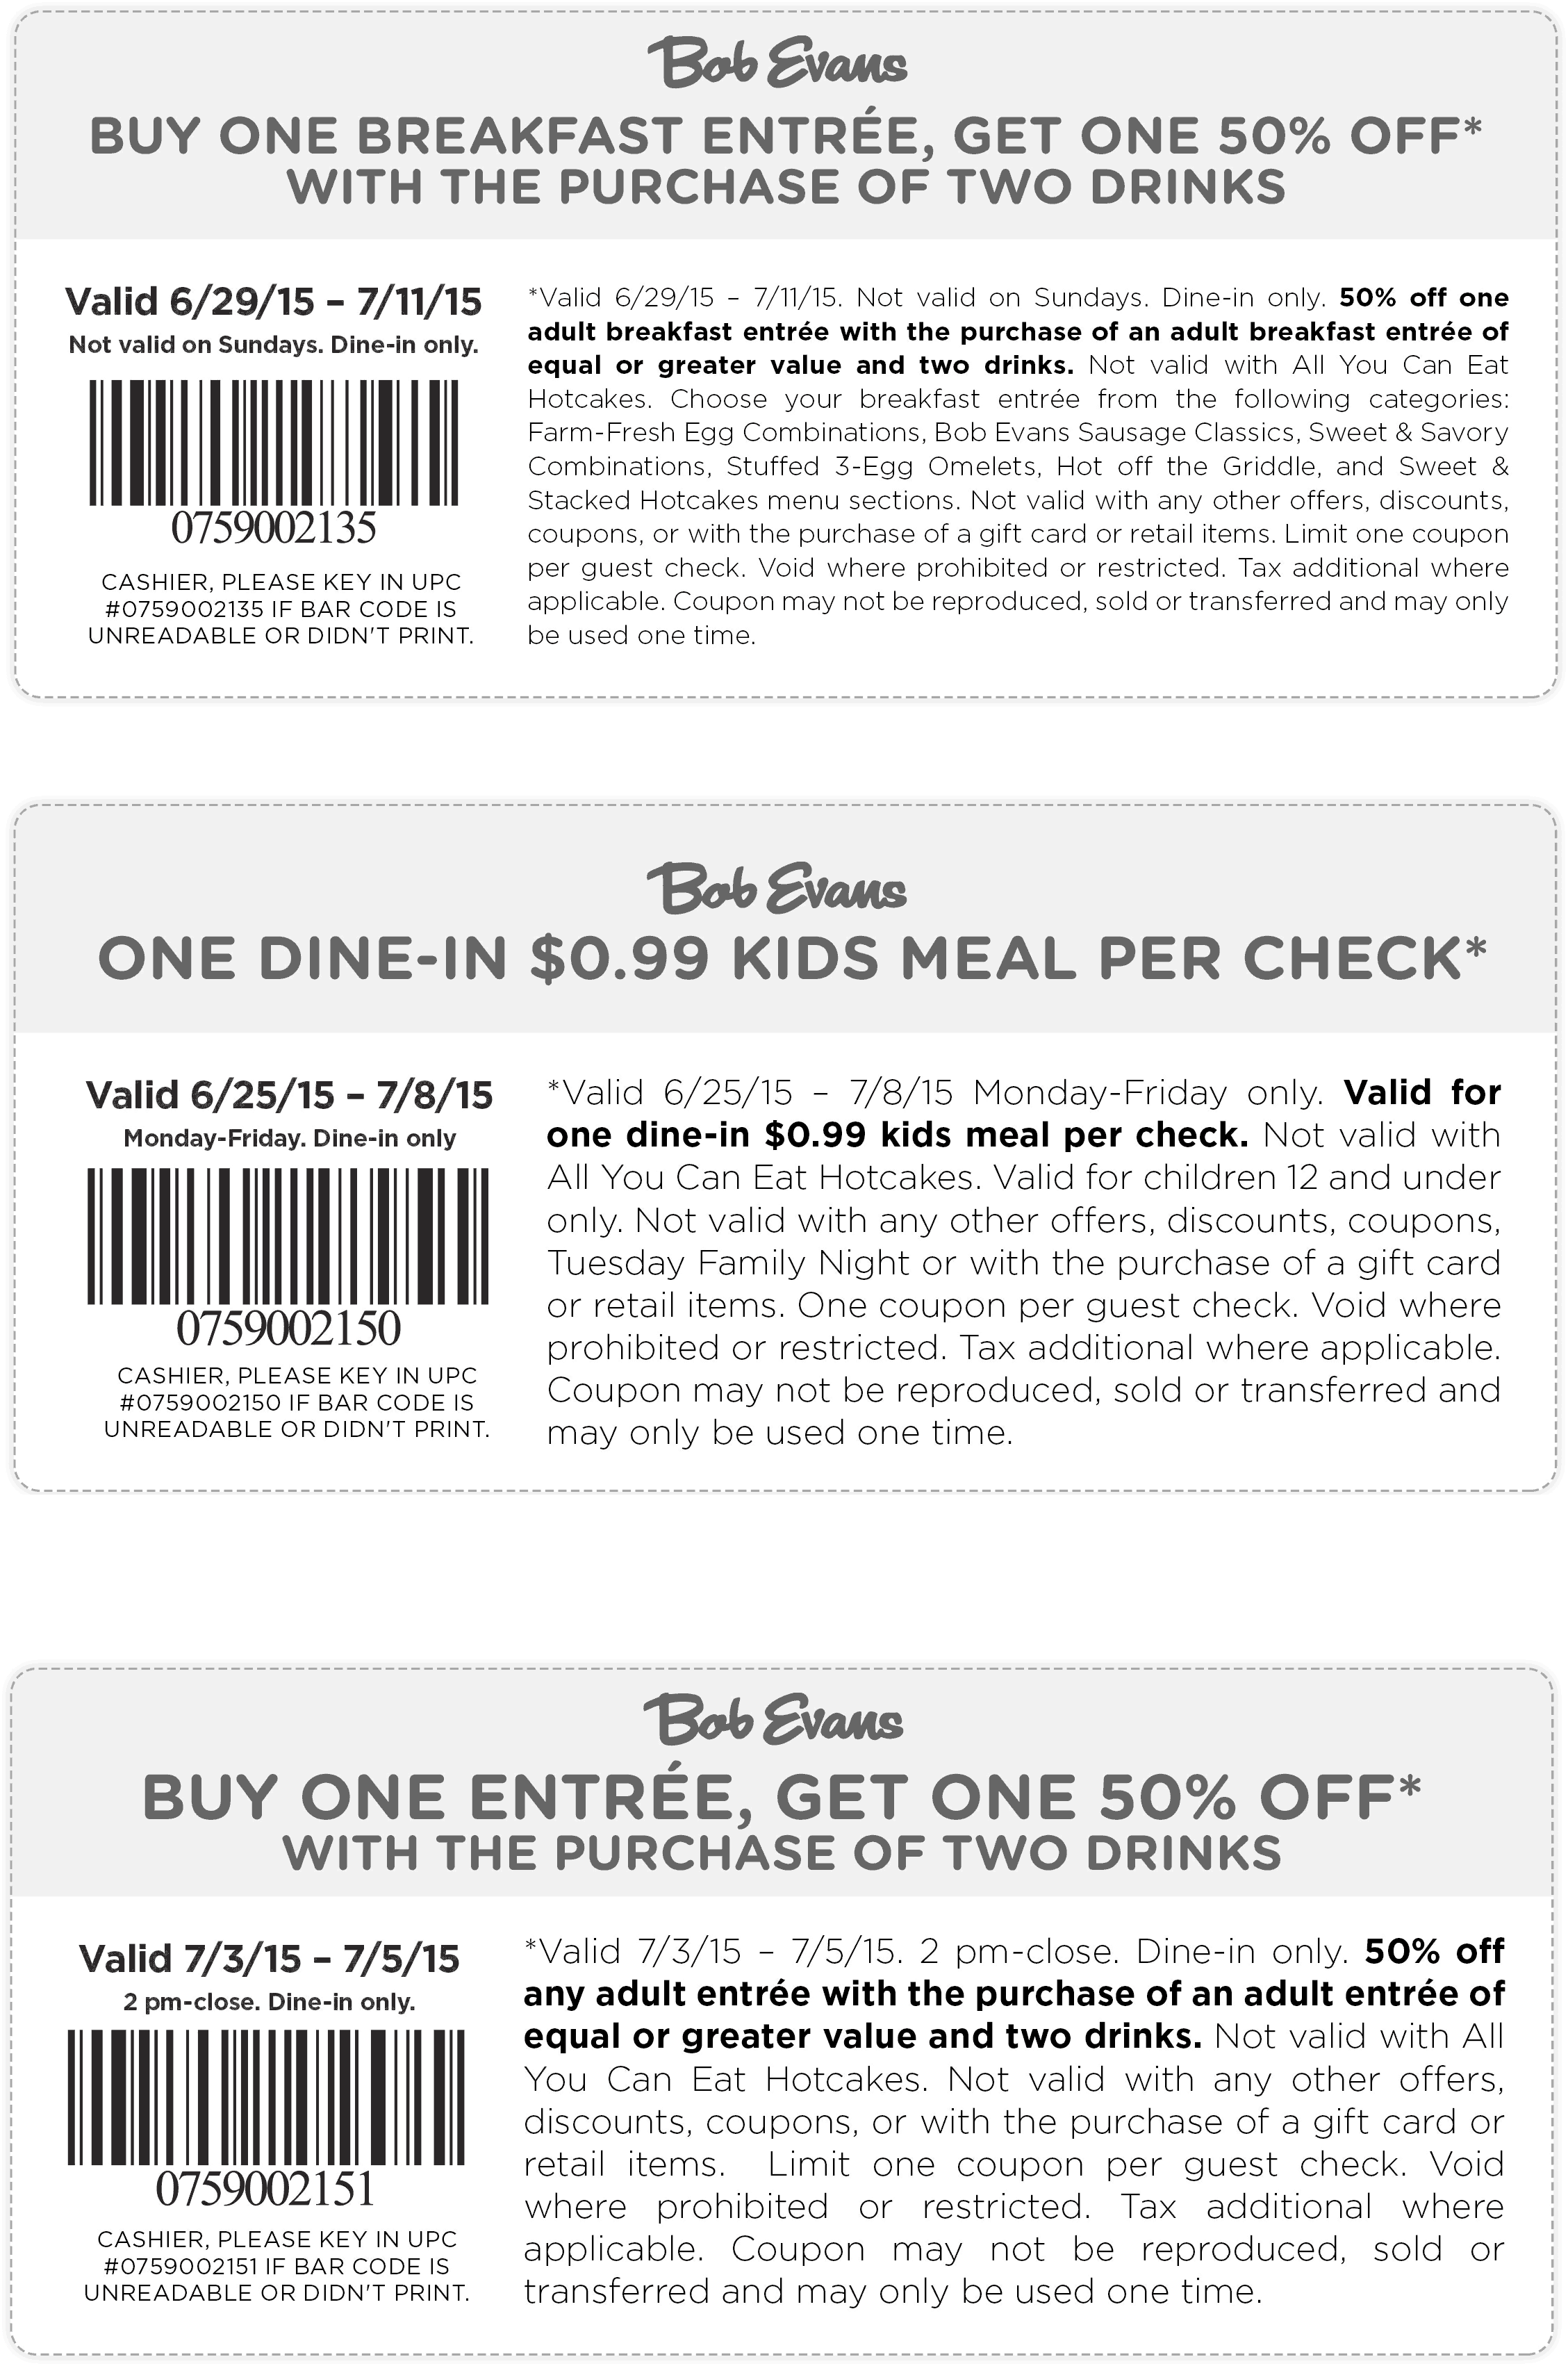 Bob Evans Coupon February 2019 Second breakfast 50% off + a kids meal for a buck at Bob Evans